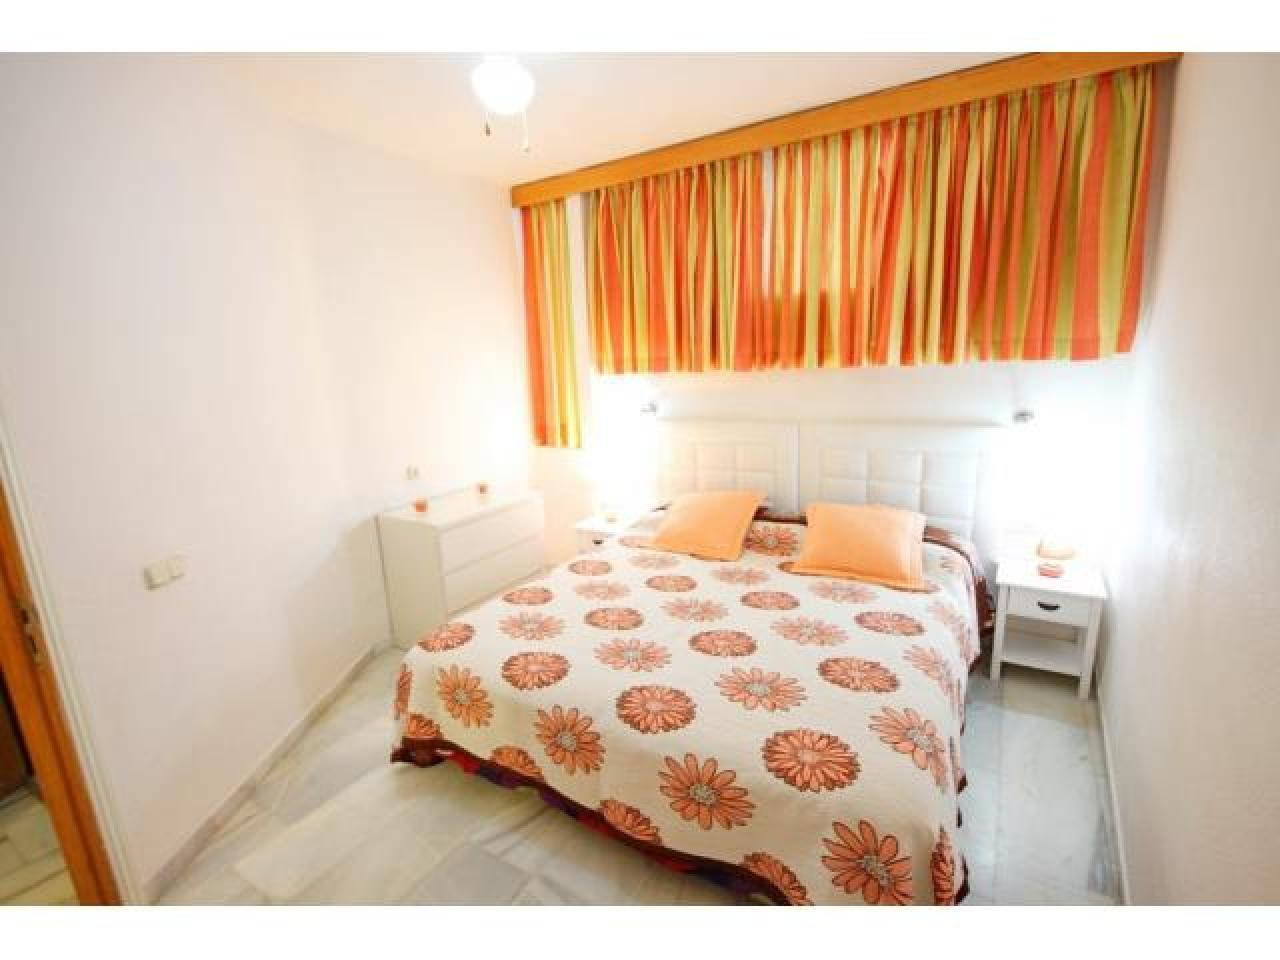 Apartment in Tenerife for rent and sale » #879 - 1